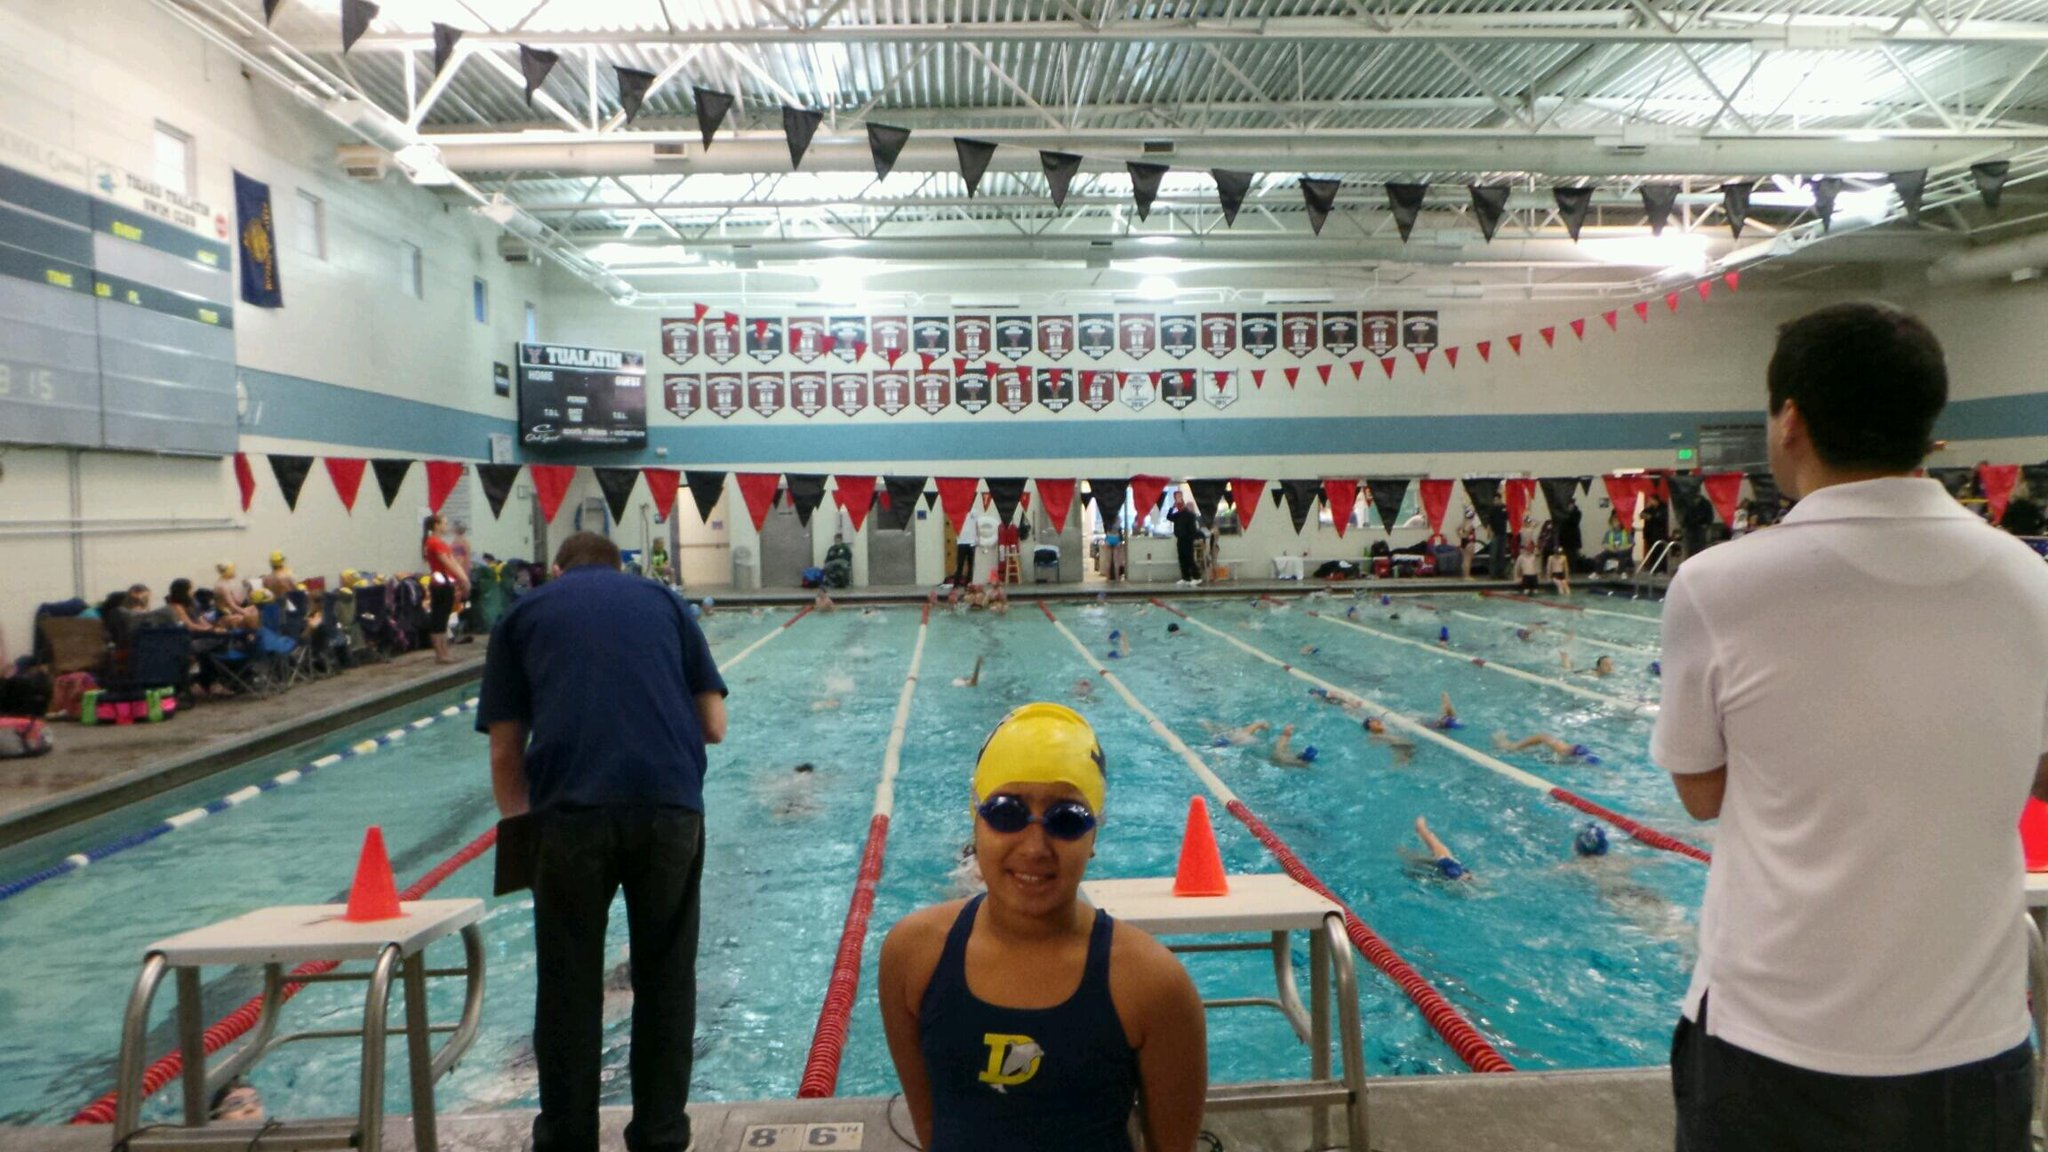 Day 2 of the swim meet...! Time for Rhi to #GoHardOrGoHome http://t.co/RoUZX8xaet